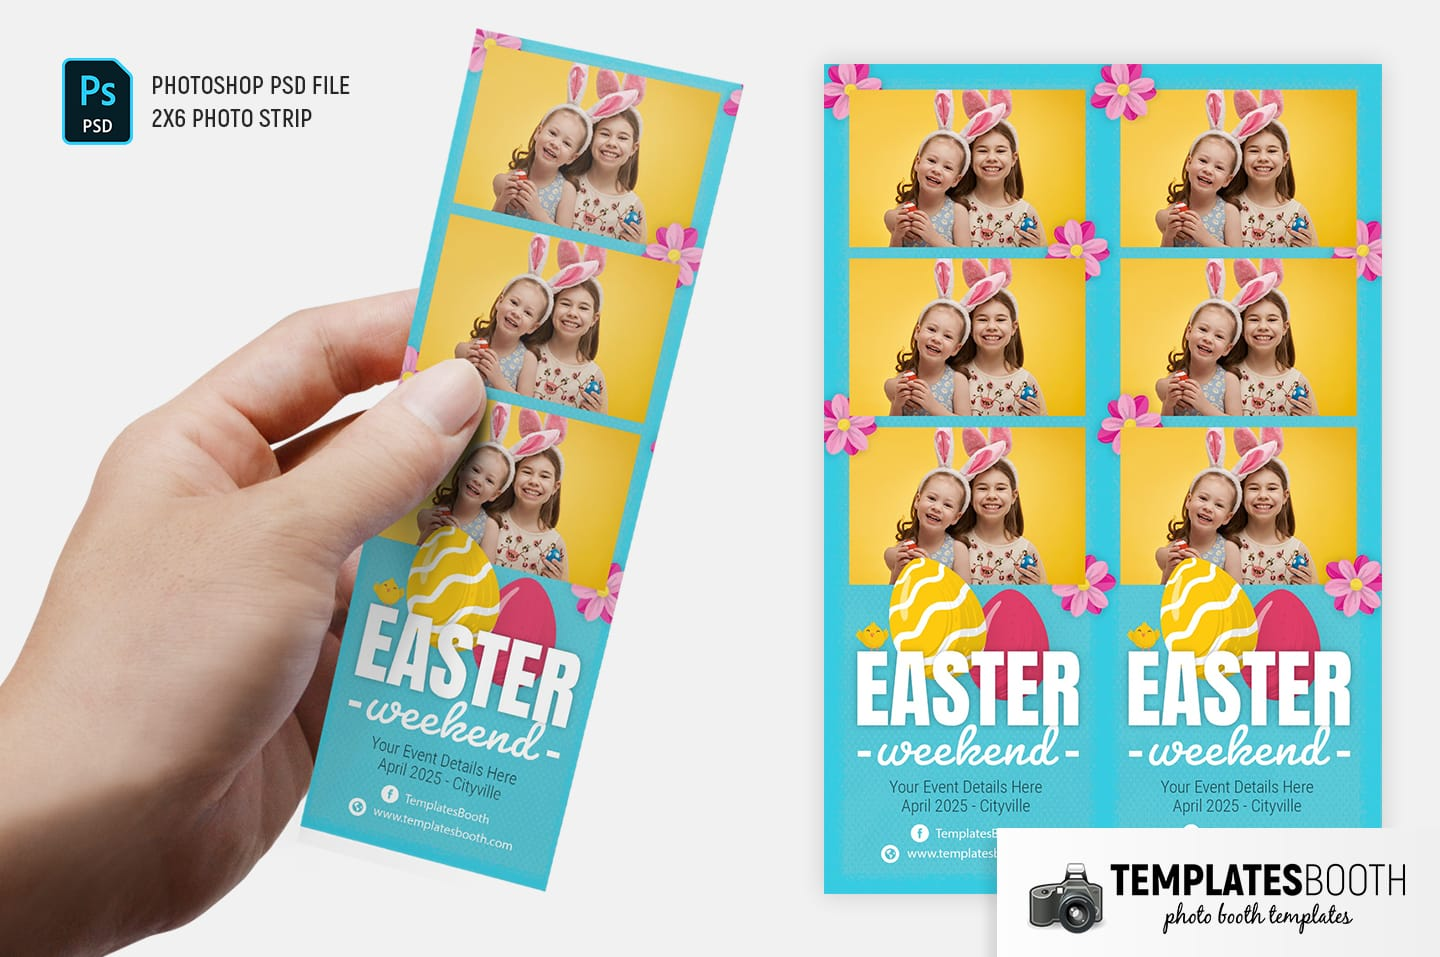 Easter Photo Booth Template (2x6 photo strip)